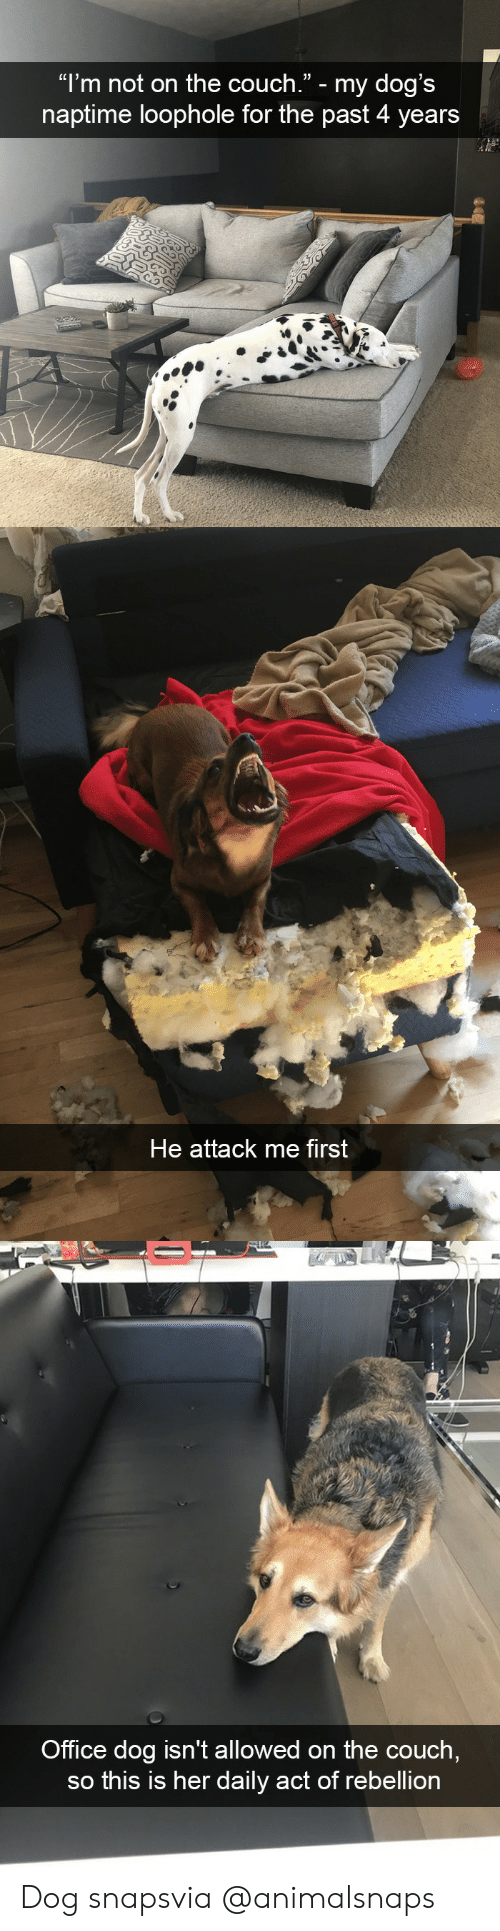 "Dogs, Target, and Tumblr: ""l'm not on the couch."" - my dog's  naptime loophole for the past 4 years   He attack me first   Office dog isn't allowed on the couch  so this is her daily act of rebellion Dog snapsvia @animalsnaps"